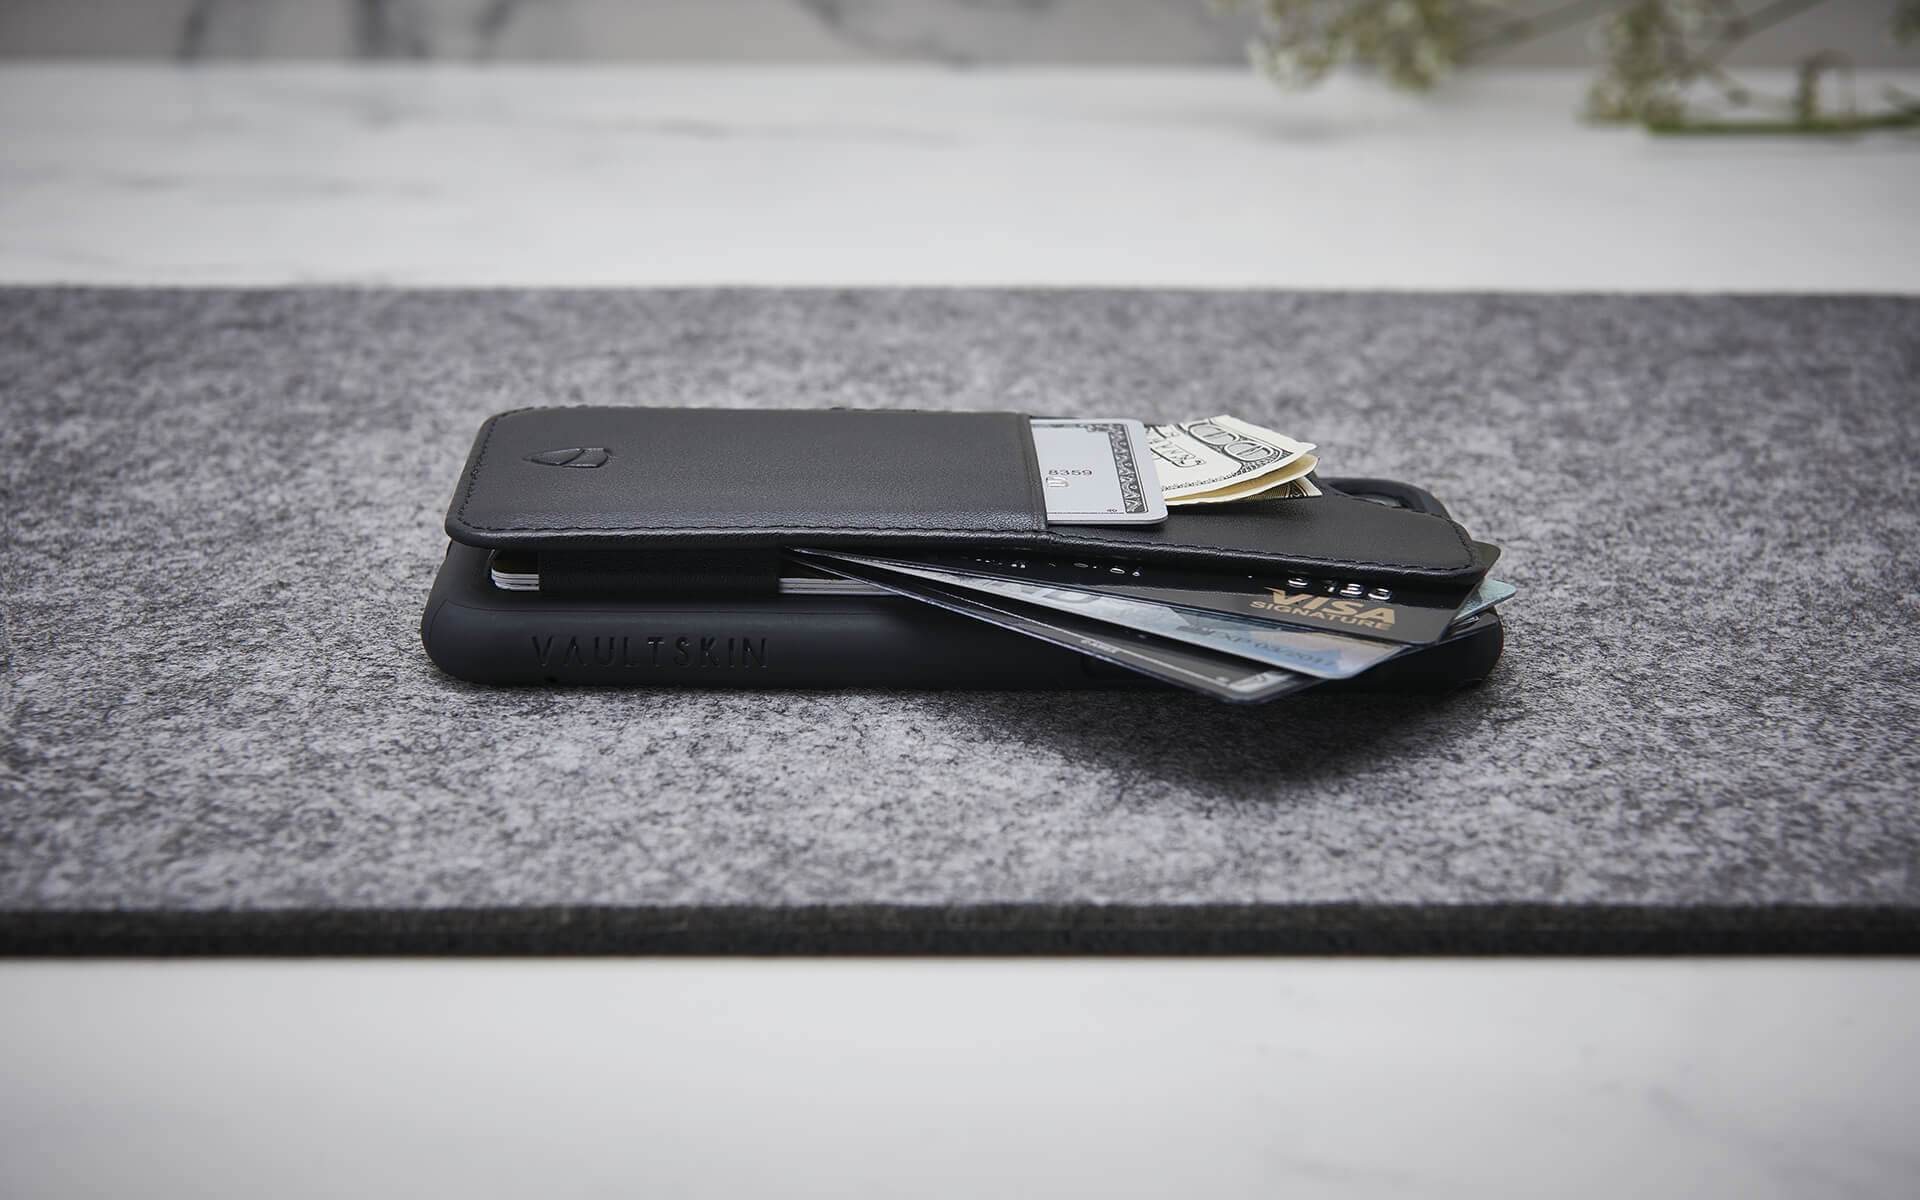 iPhone case with credit card holder - ETON Armour by Vaultskin